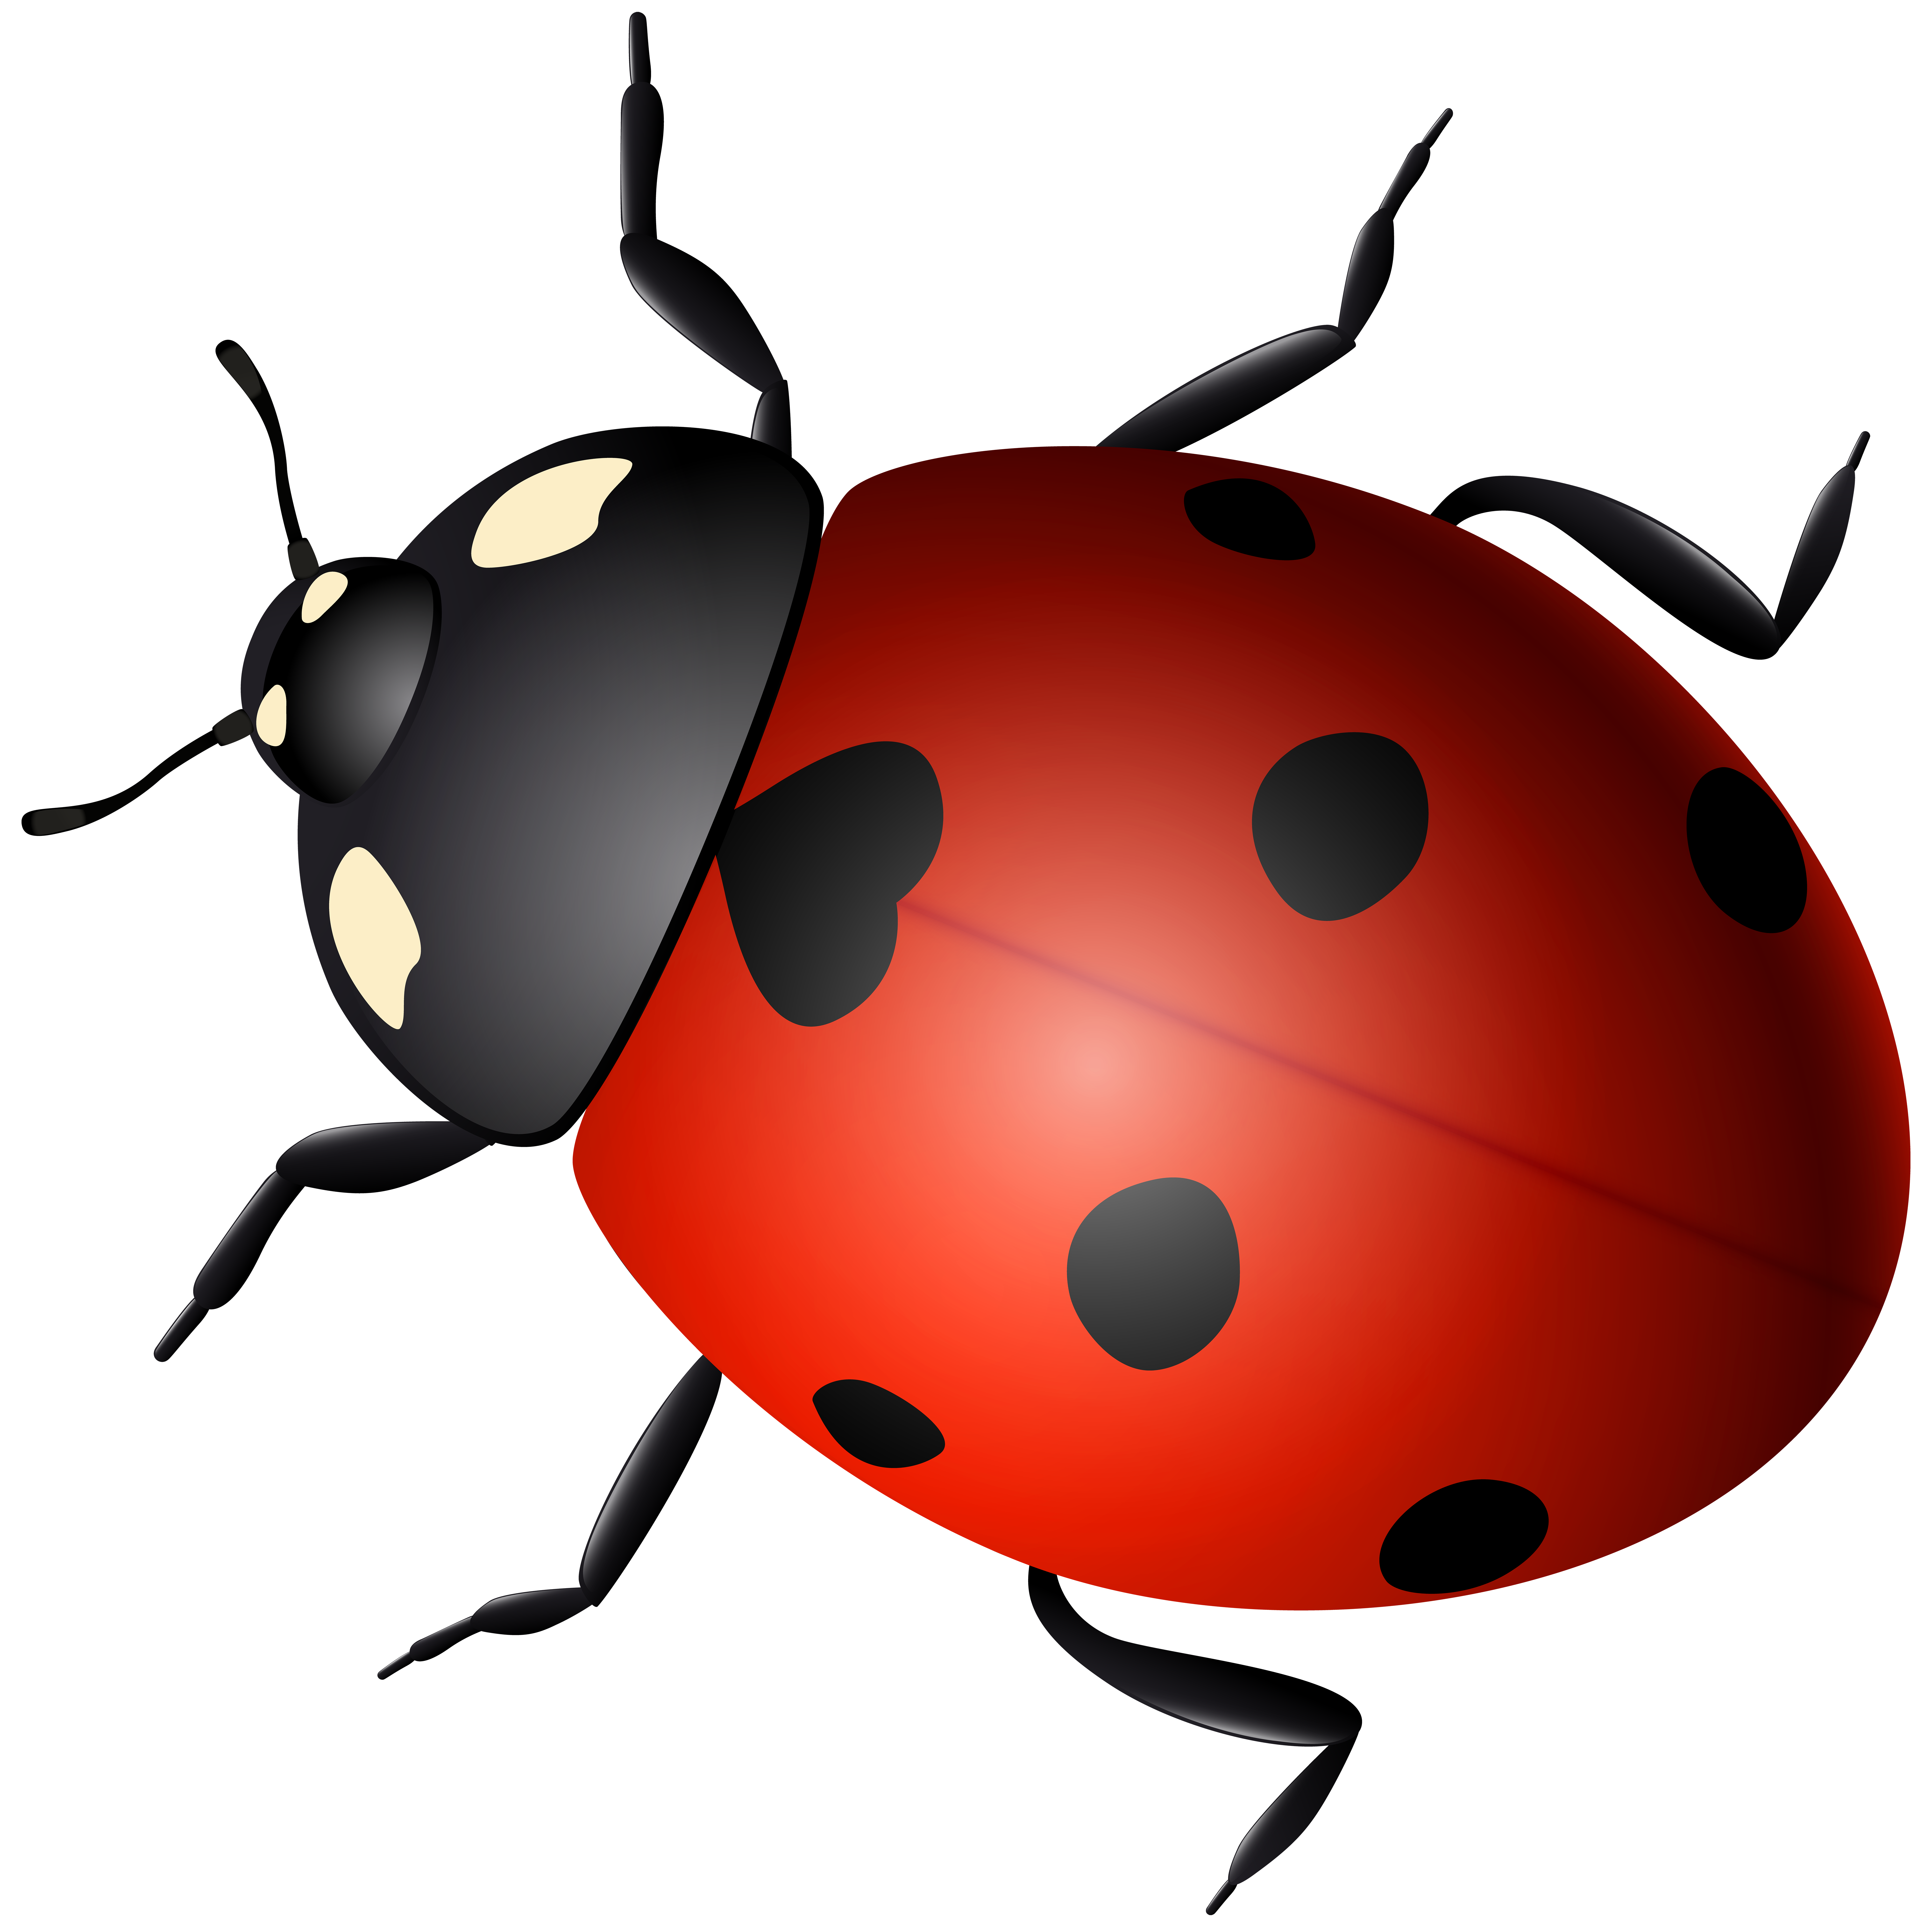 ladybug decorative transparent image gallery yopriceville high quality images and #29703